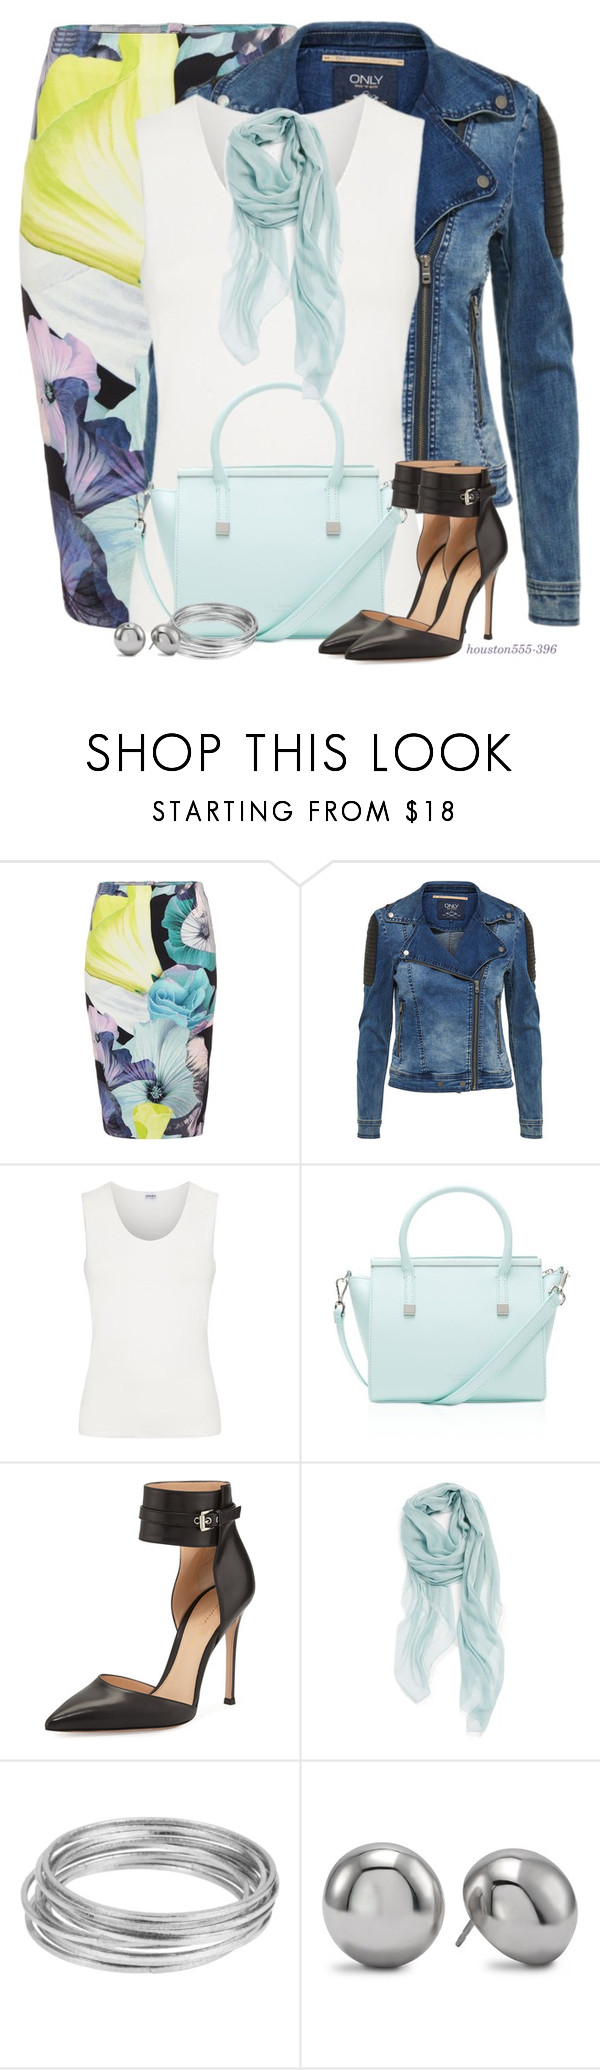 """Denim Jacket & Pencil Skirt"" by houston555-396 ❤ liked on Polyvore featuring Bardot, Armani Collezioni, Ted Baker, Gianvito Rossi, Nordstrom, Worthington and Chico's"